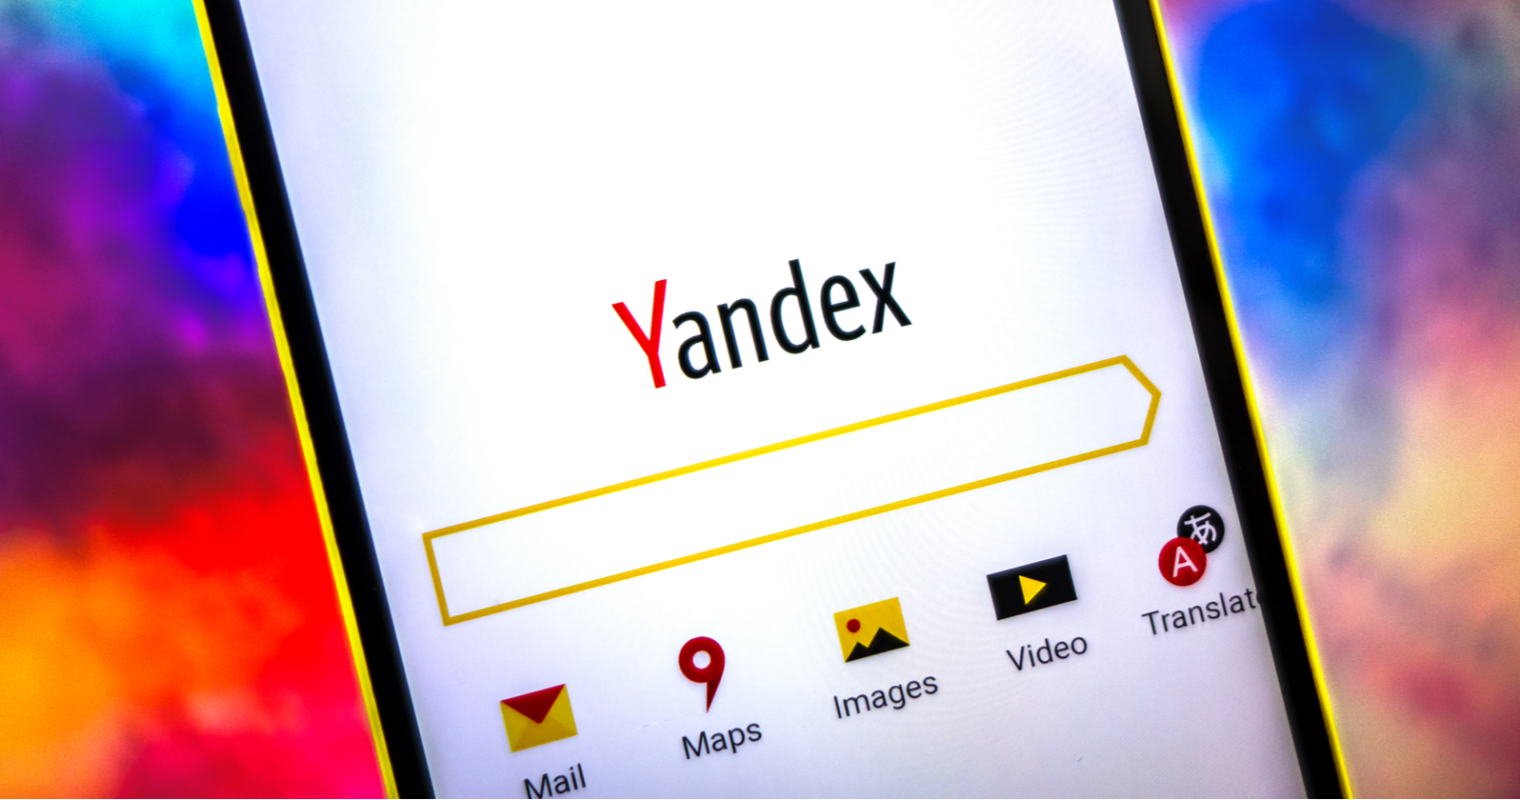 Yandex SEO: An Interview with the Yandex Search Team